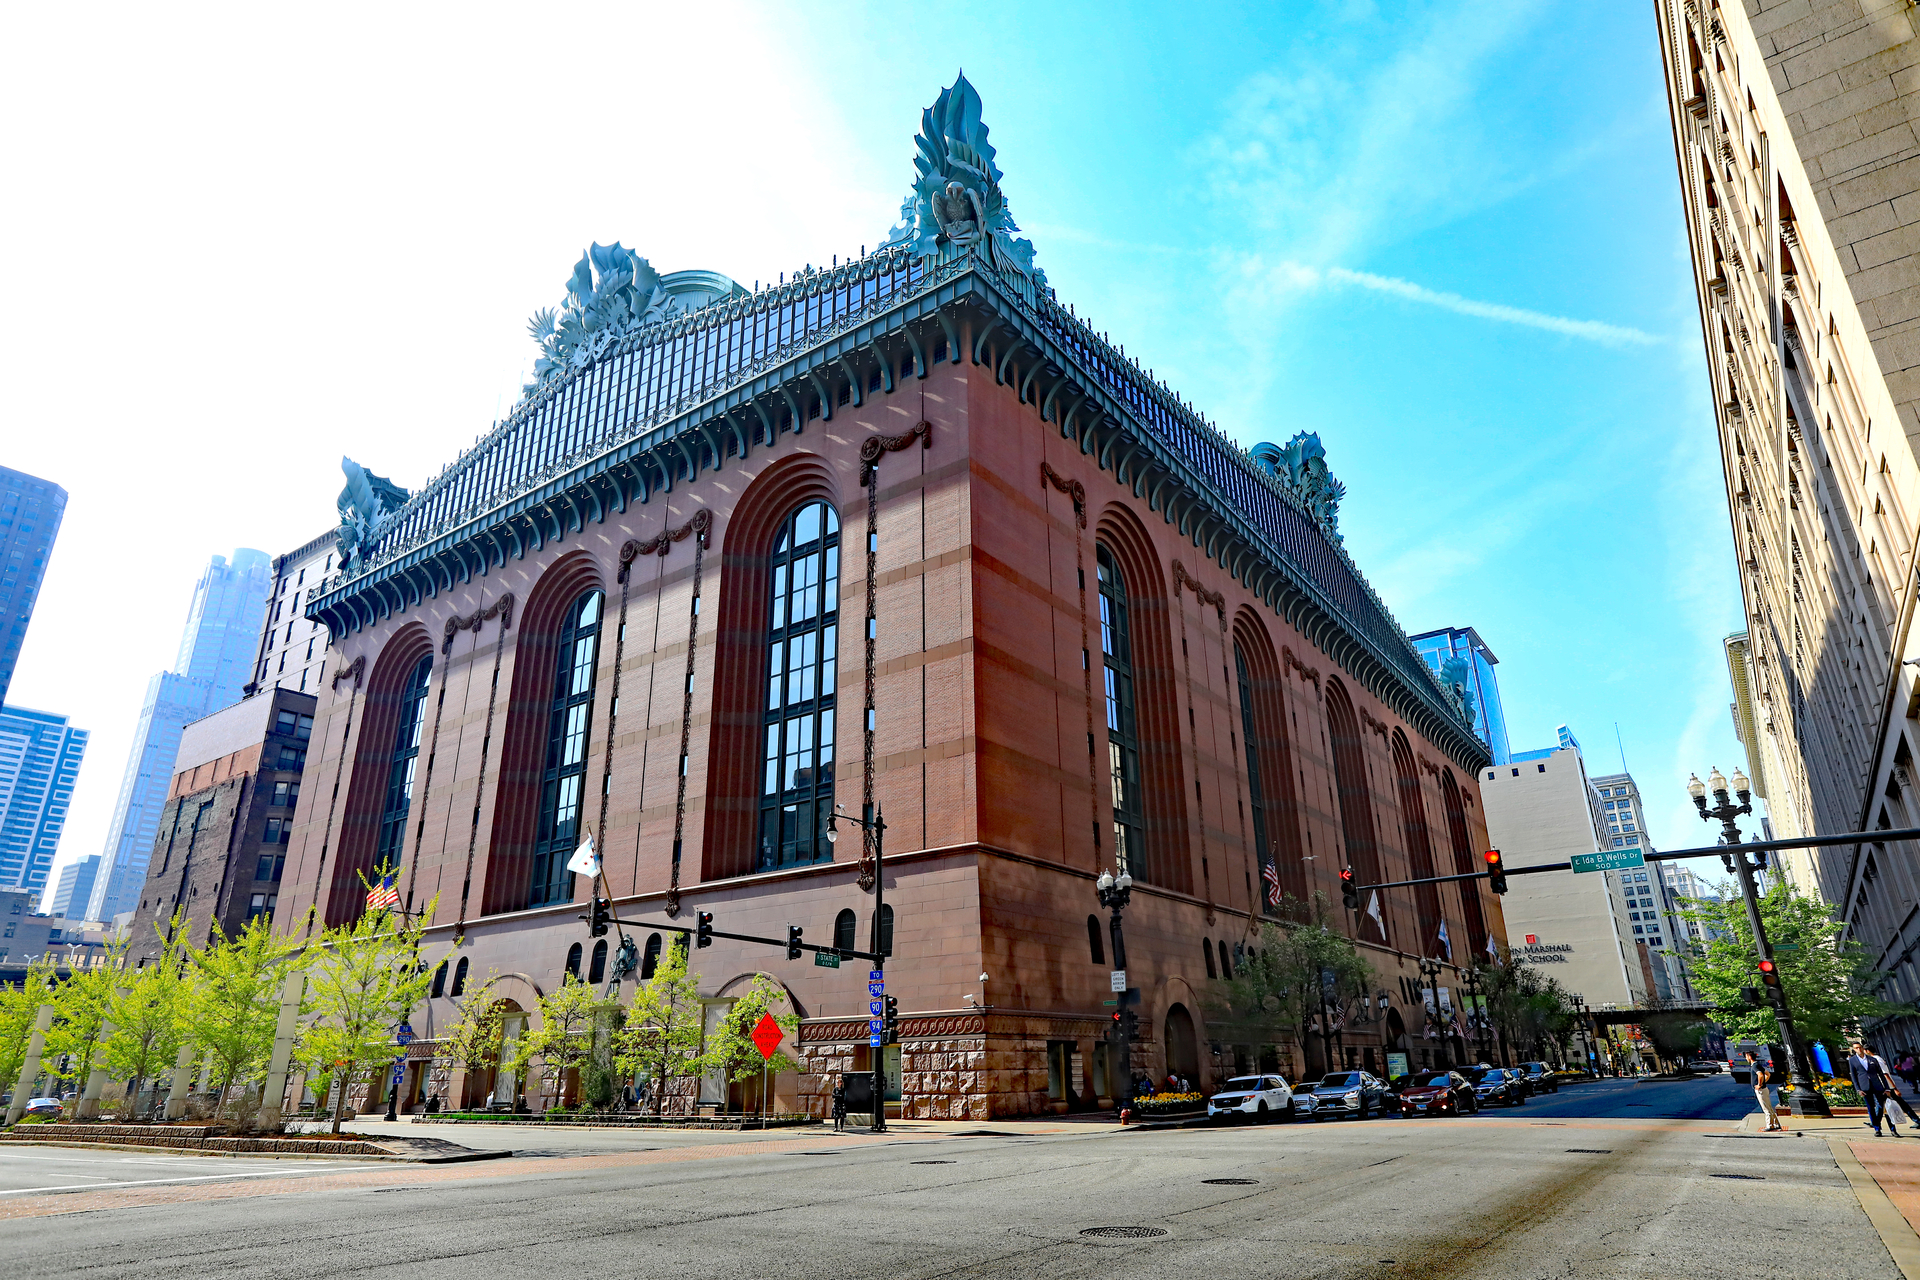 The Chicago Public Library was constructed in 1873. As a Chicagoland Historical Landmark the building has gone through several renovations during its lifetime.  Our In Floor Cellular Raceway System was implemented during one of the library renovations that took place in the late 1980's.  These beautiful photos are of the 2017 remodel which is now the Harold Washington Children's Library Center. It'sjust one of the projects that demonstrates that that our system holds up to the test of time.  © Tom Harris   Design by Gensler